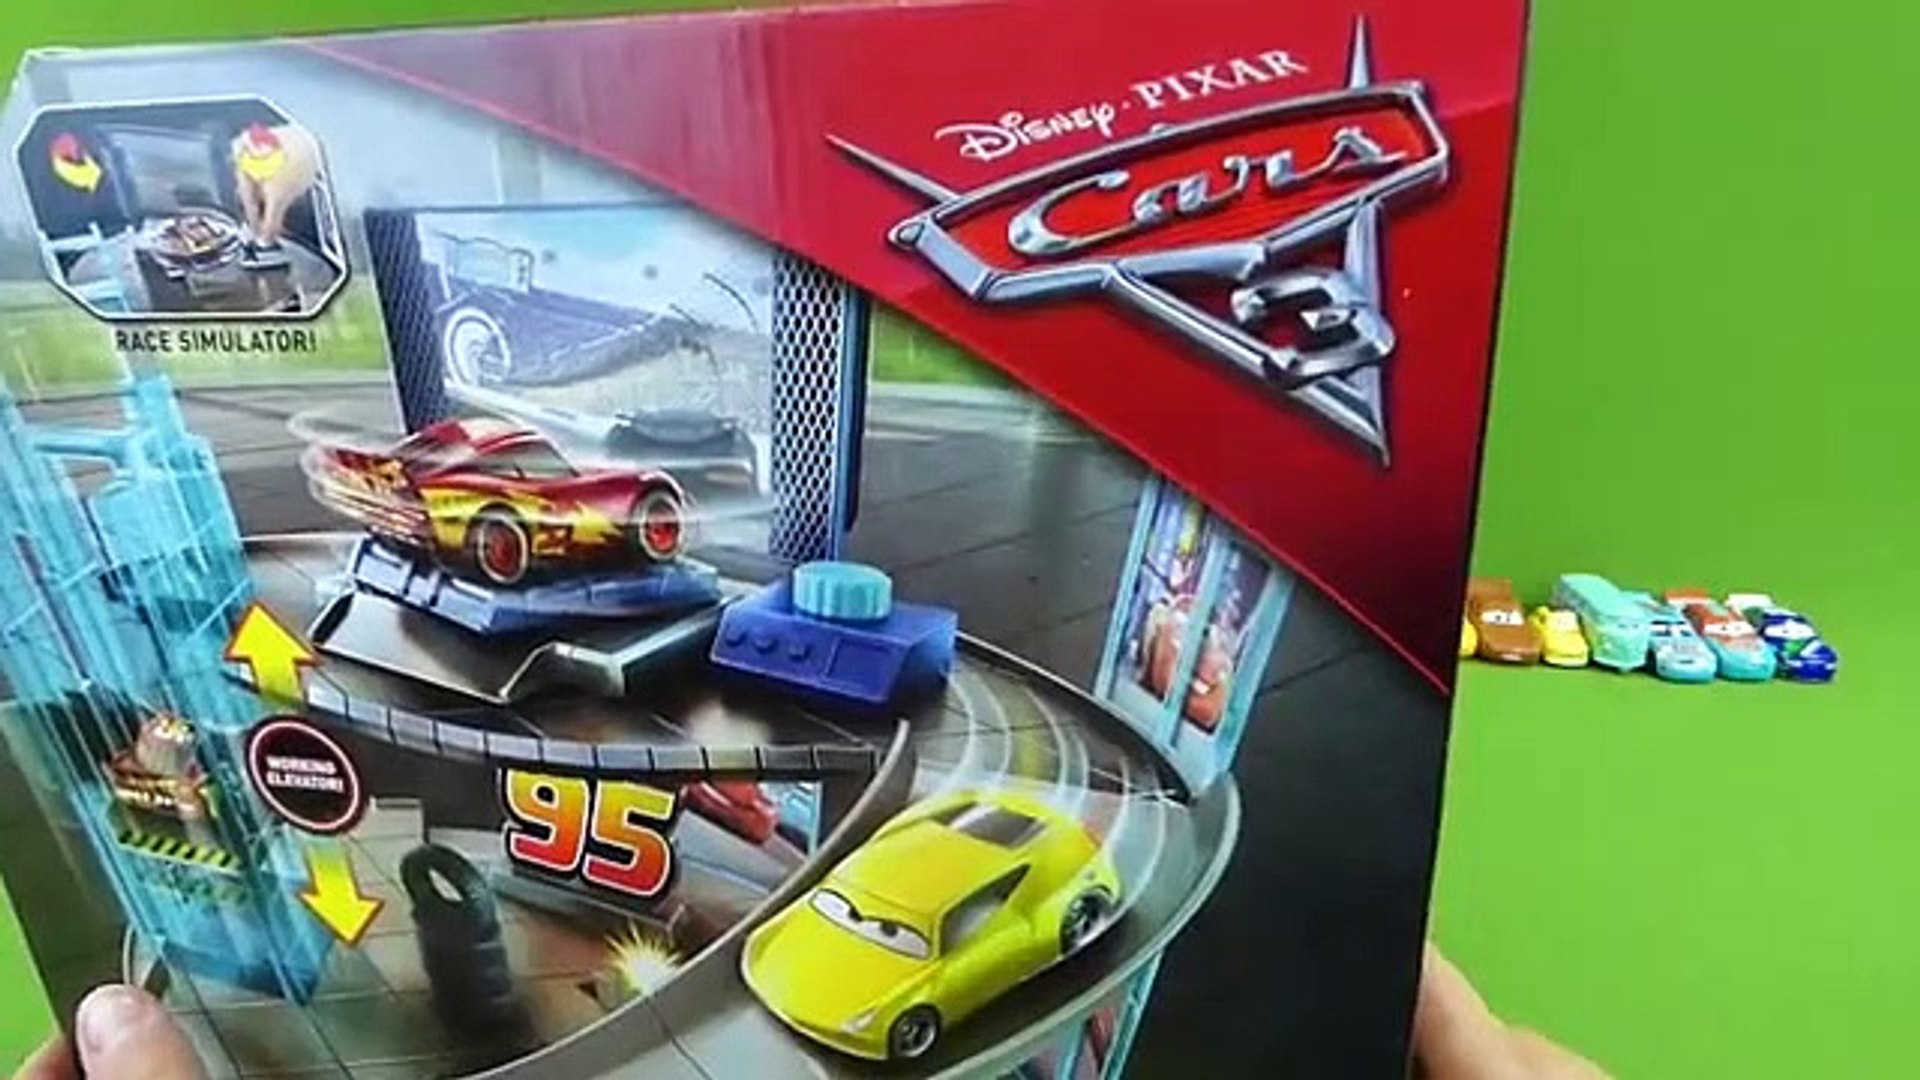 Rust Eze Racing Center Disney Cars 3 Toys Race Cars Florida Pit